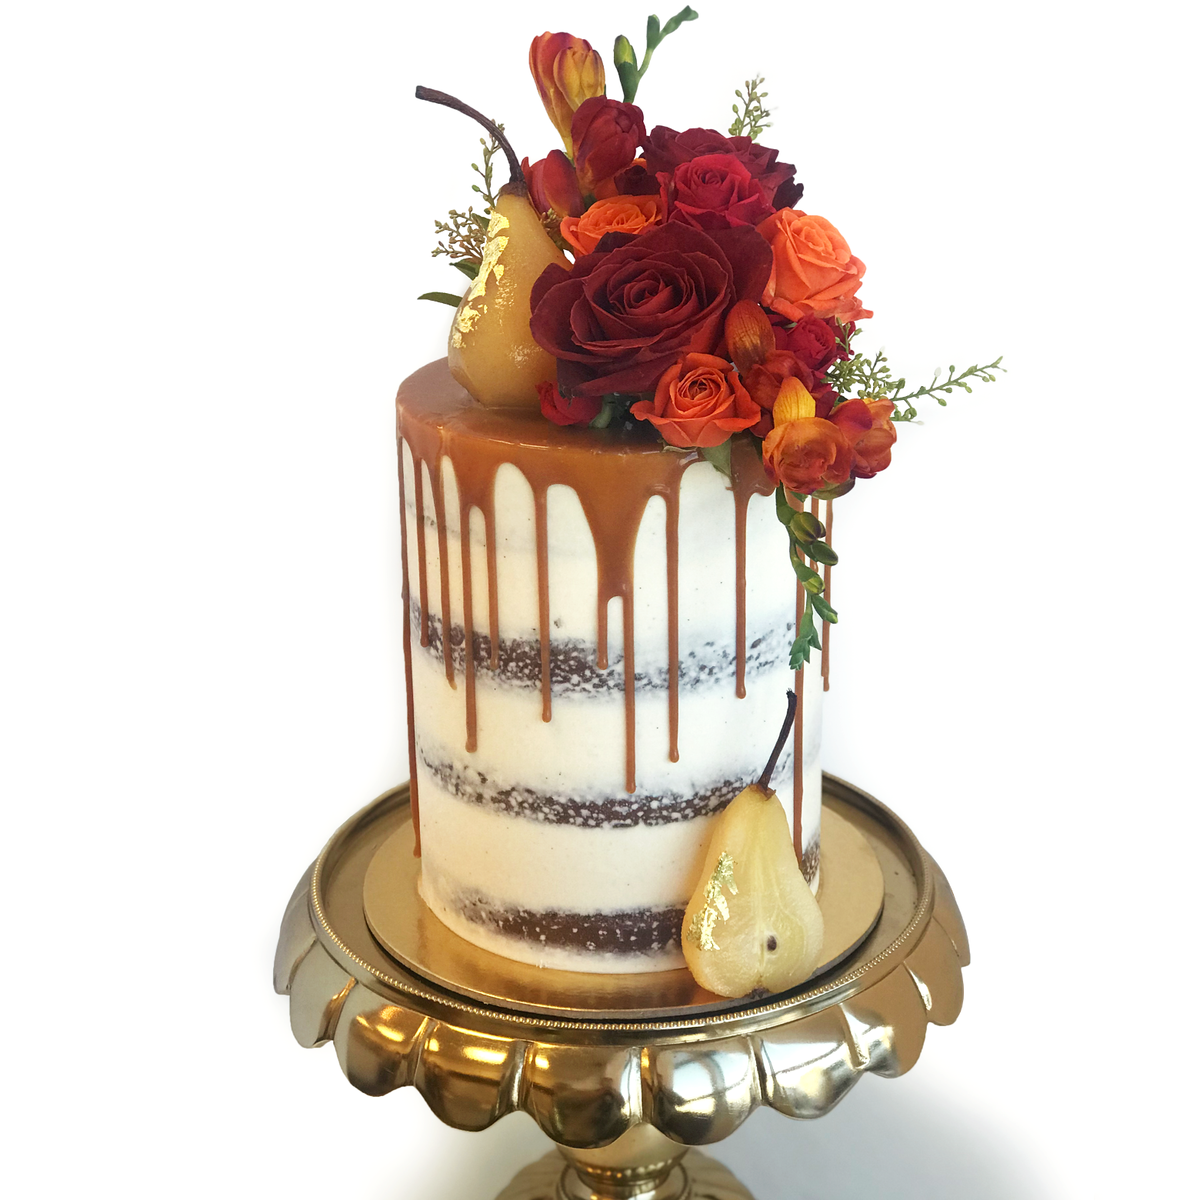 Whippt - Auction Cake Oct 2 2019 2